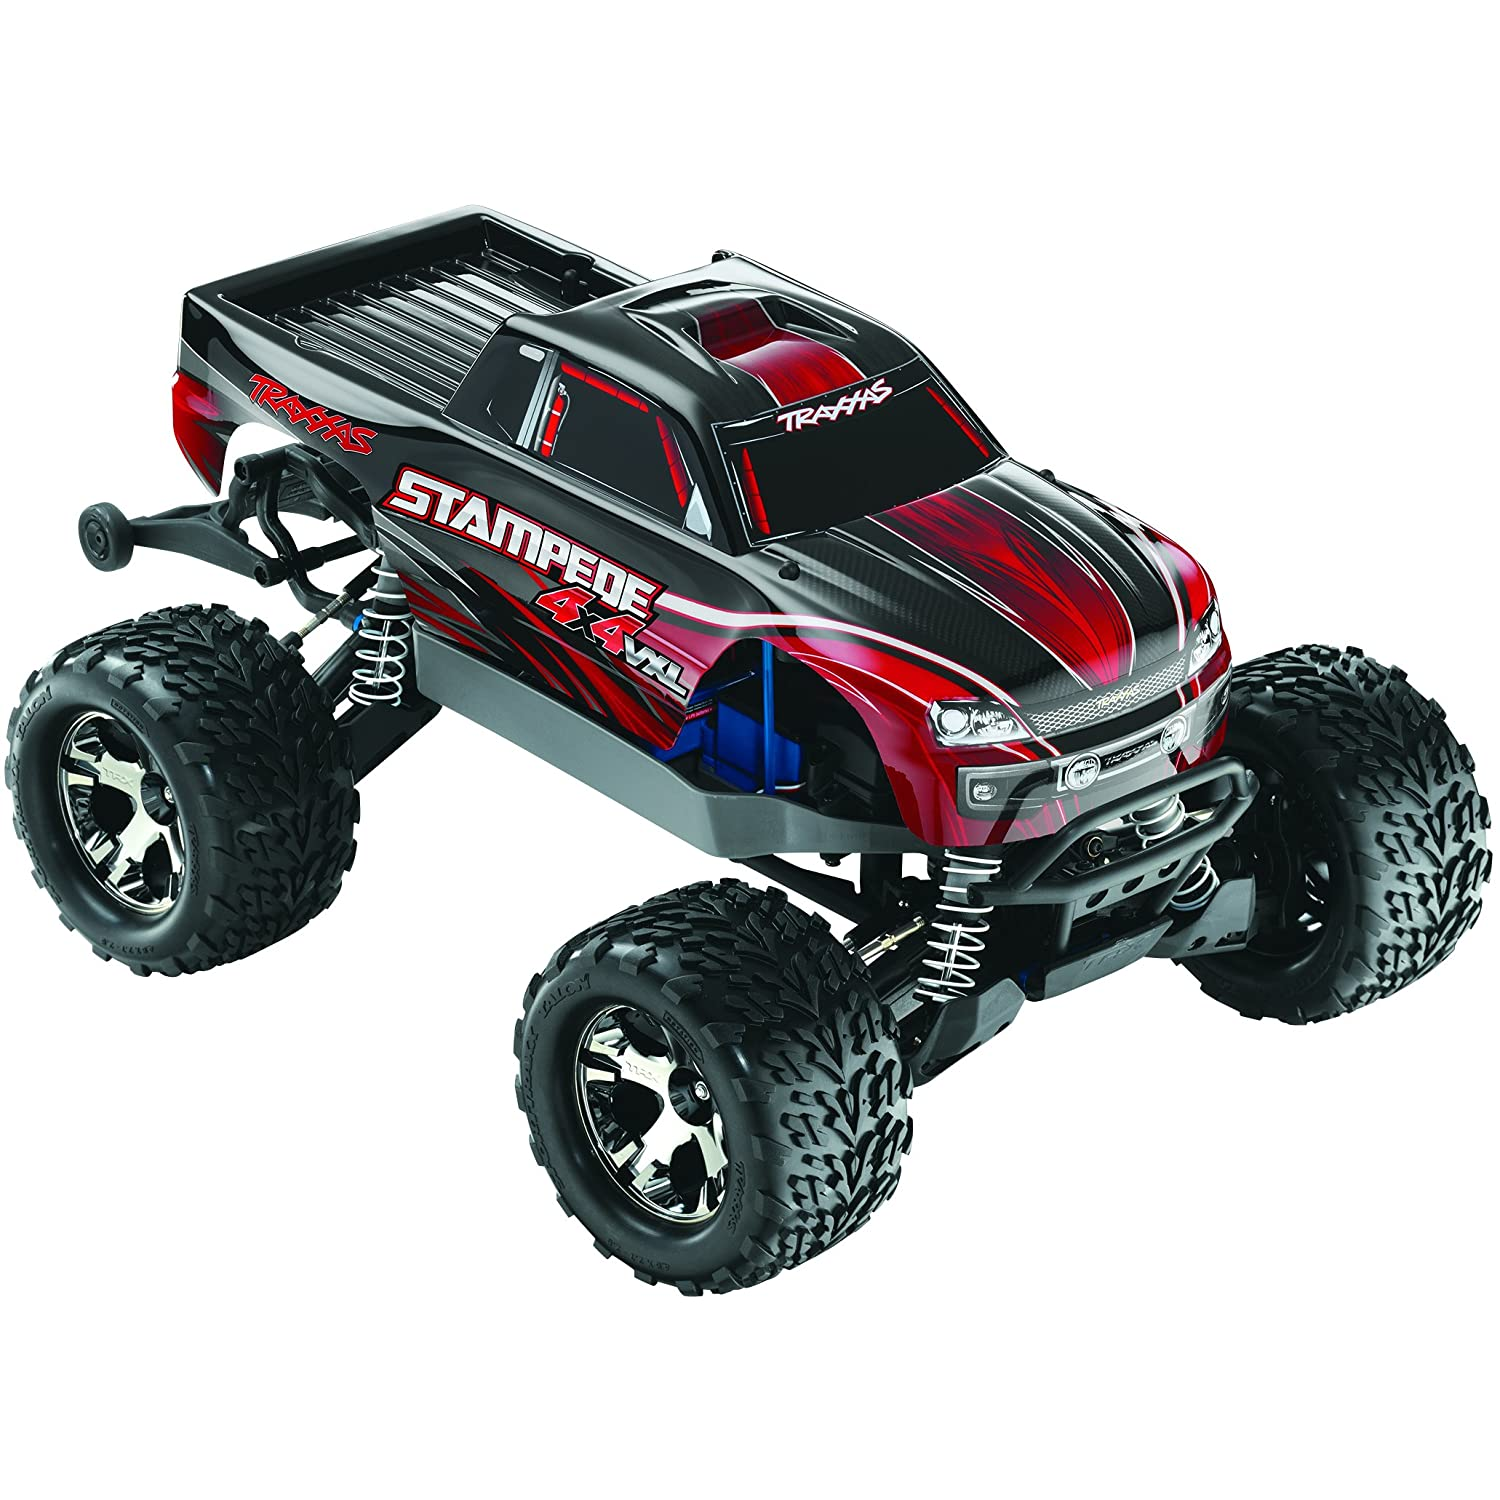 Amazon Traxxas Stampede 4X4 VXL Monster Truck Ready To Race Trucks 1 10 Scale Colors May Vary Toys & Games